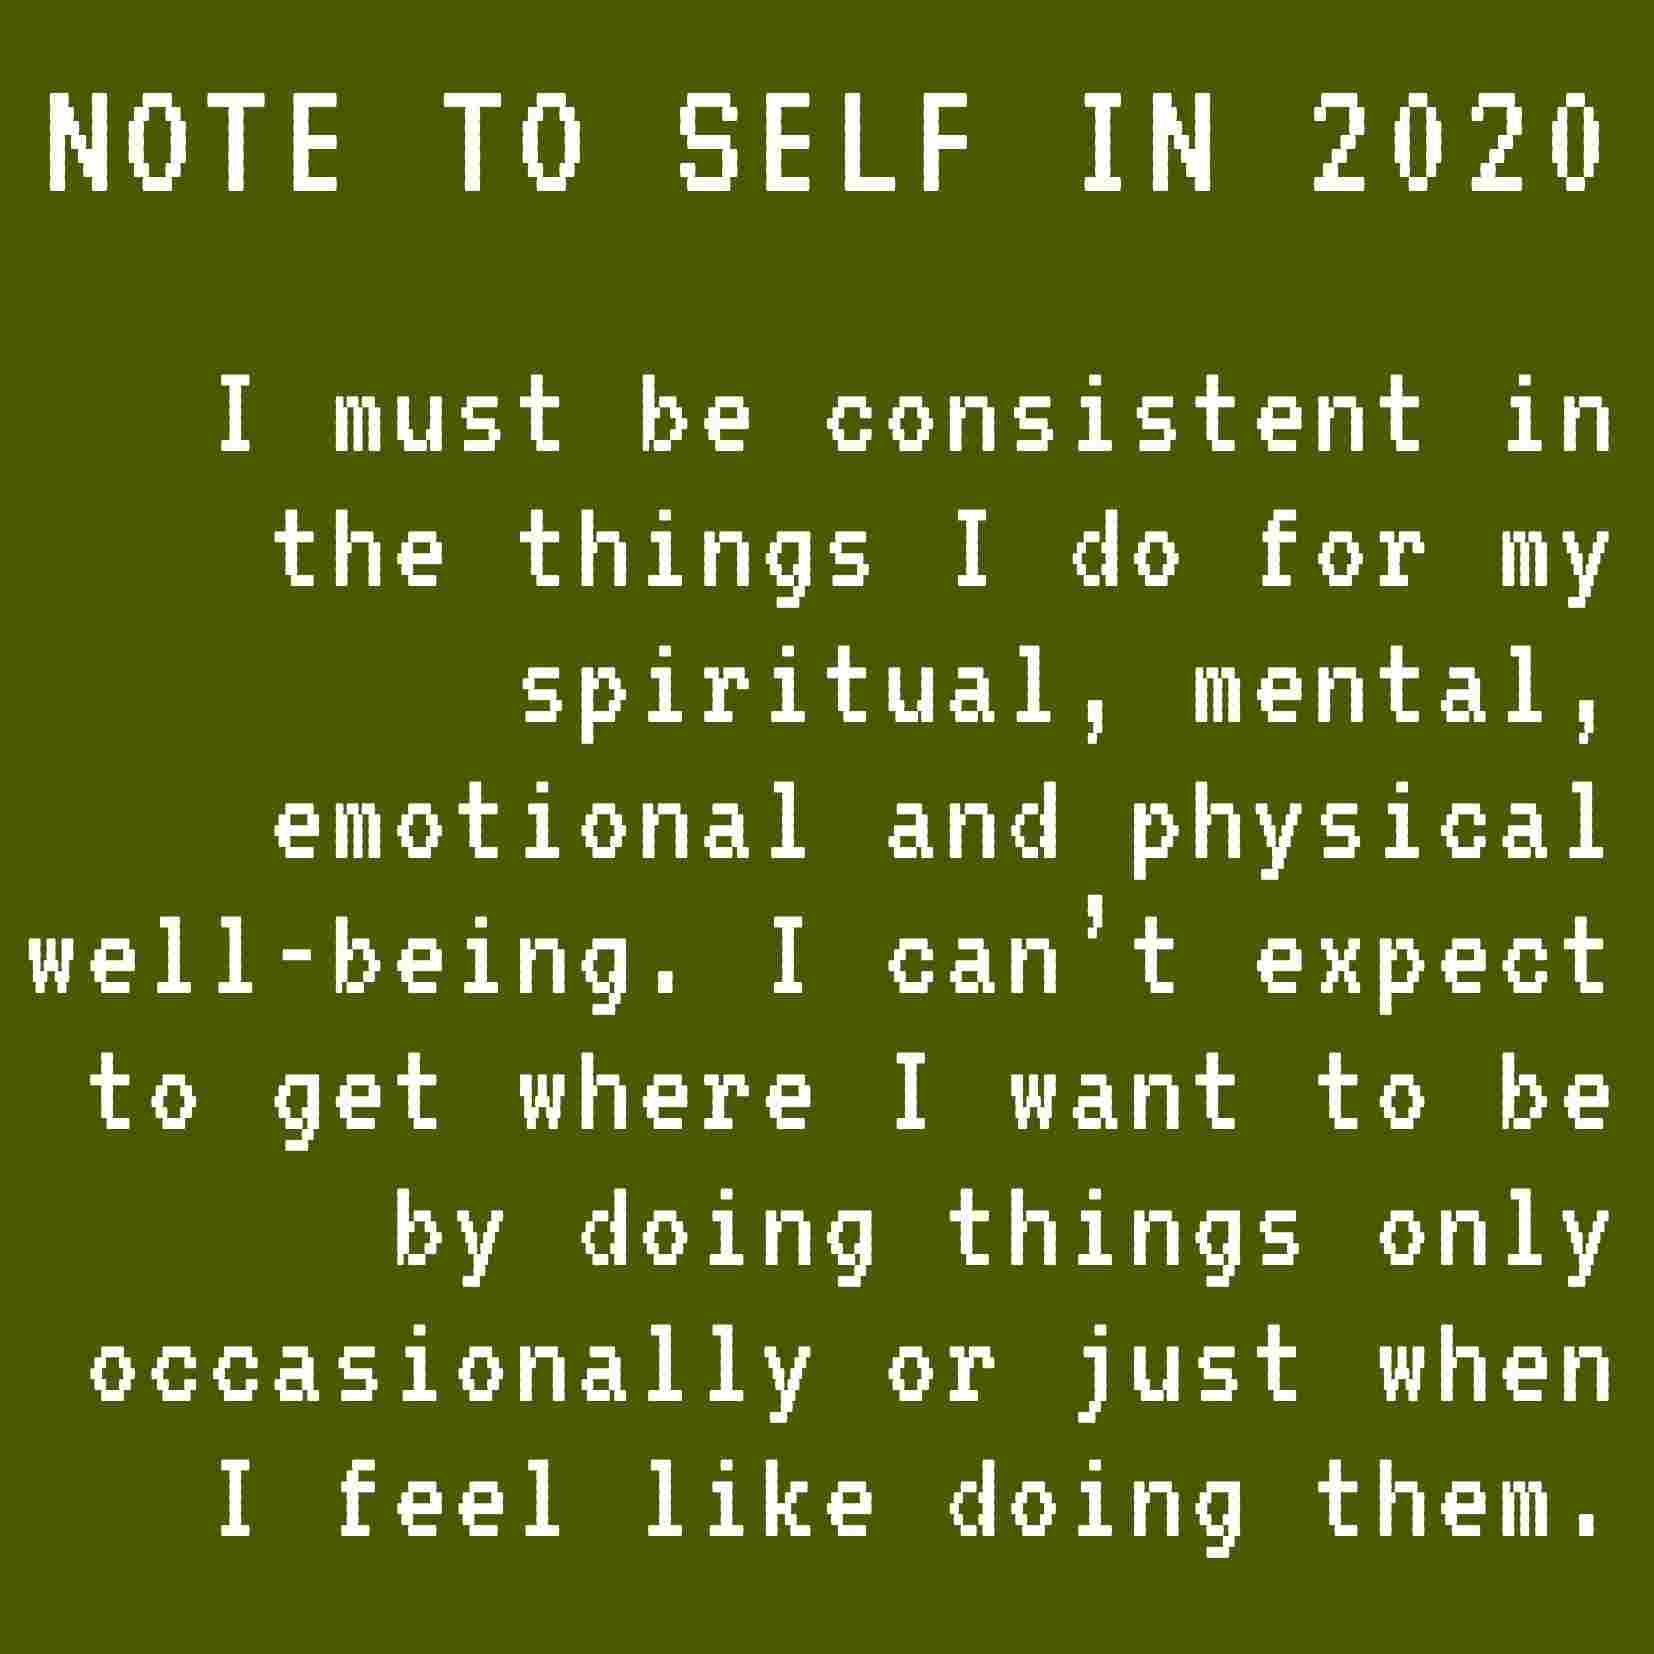 Note to self in 2020 year I must be consistent in the